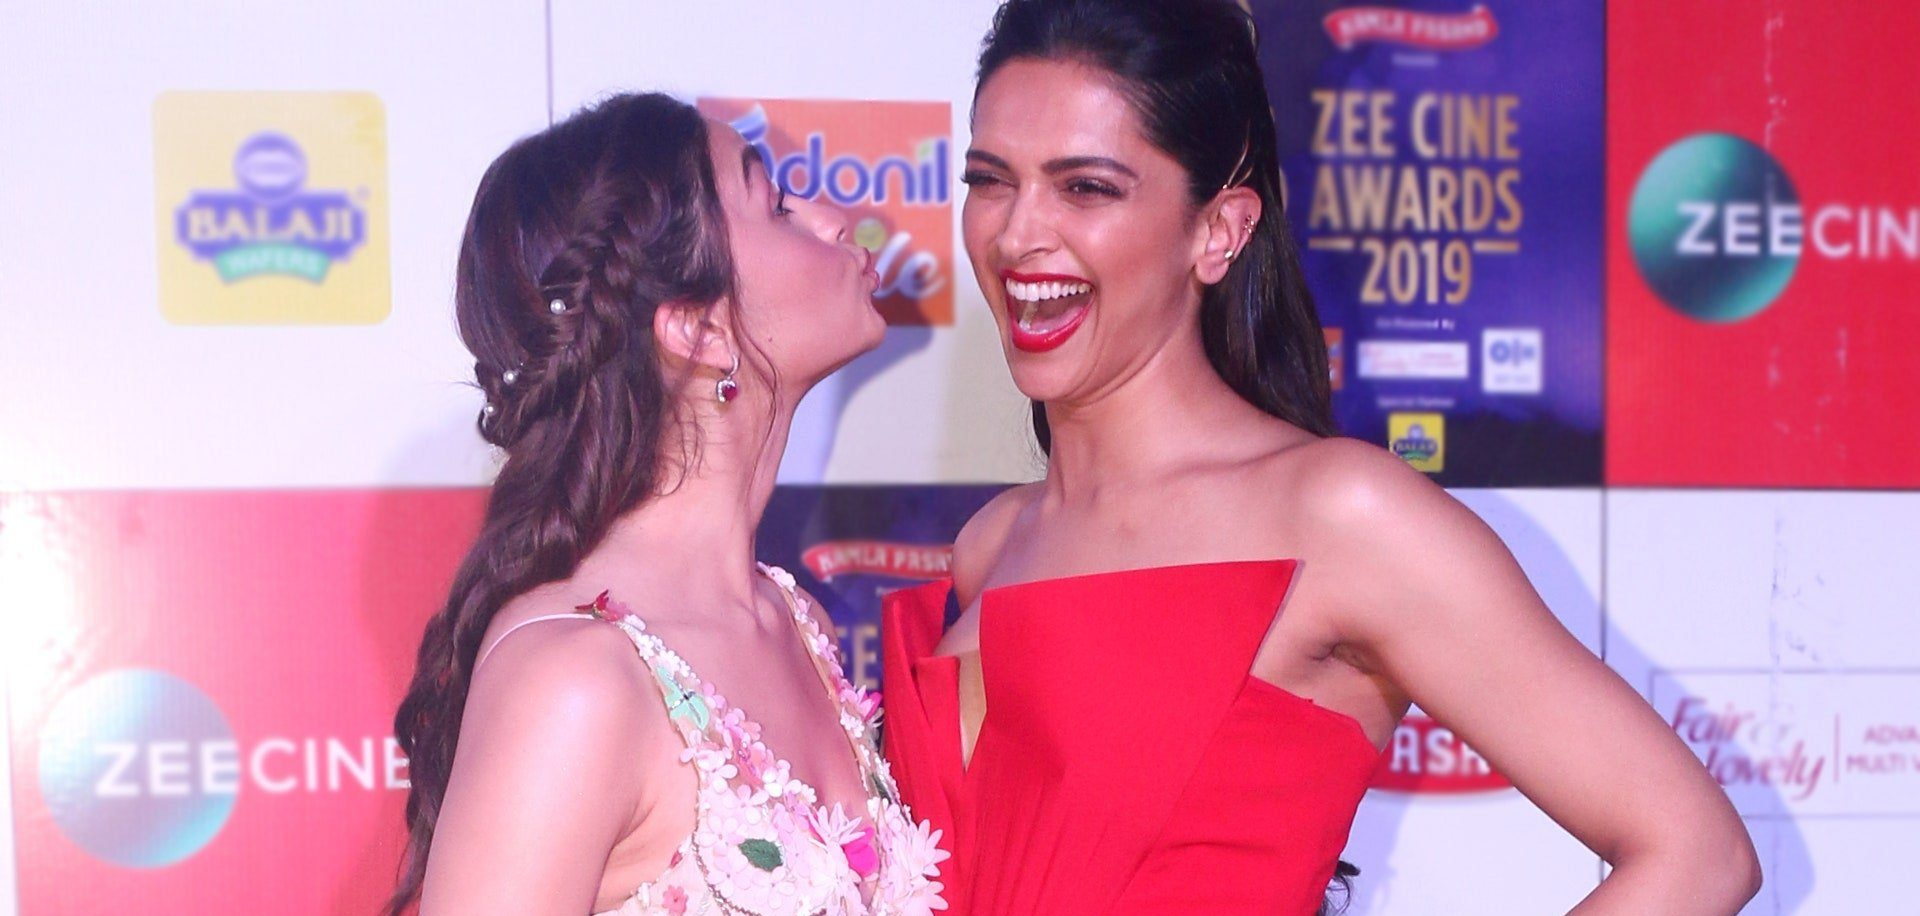 Ali Bhatt, Ranbir Kapoor Girlfriend and Deepika Padukone, Ranveer Singh Wife on red carpet picture taken by Bollywood paparazzi.